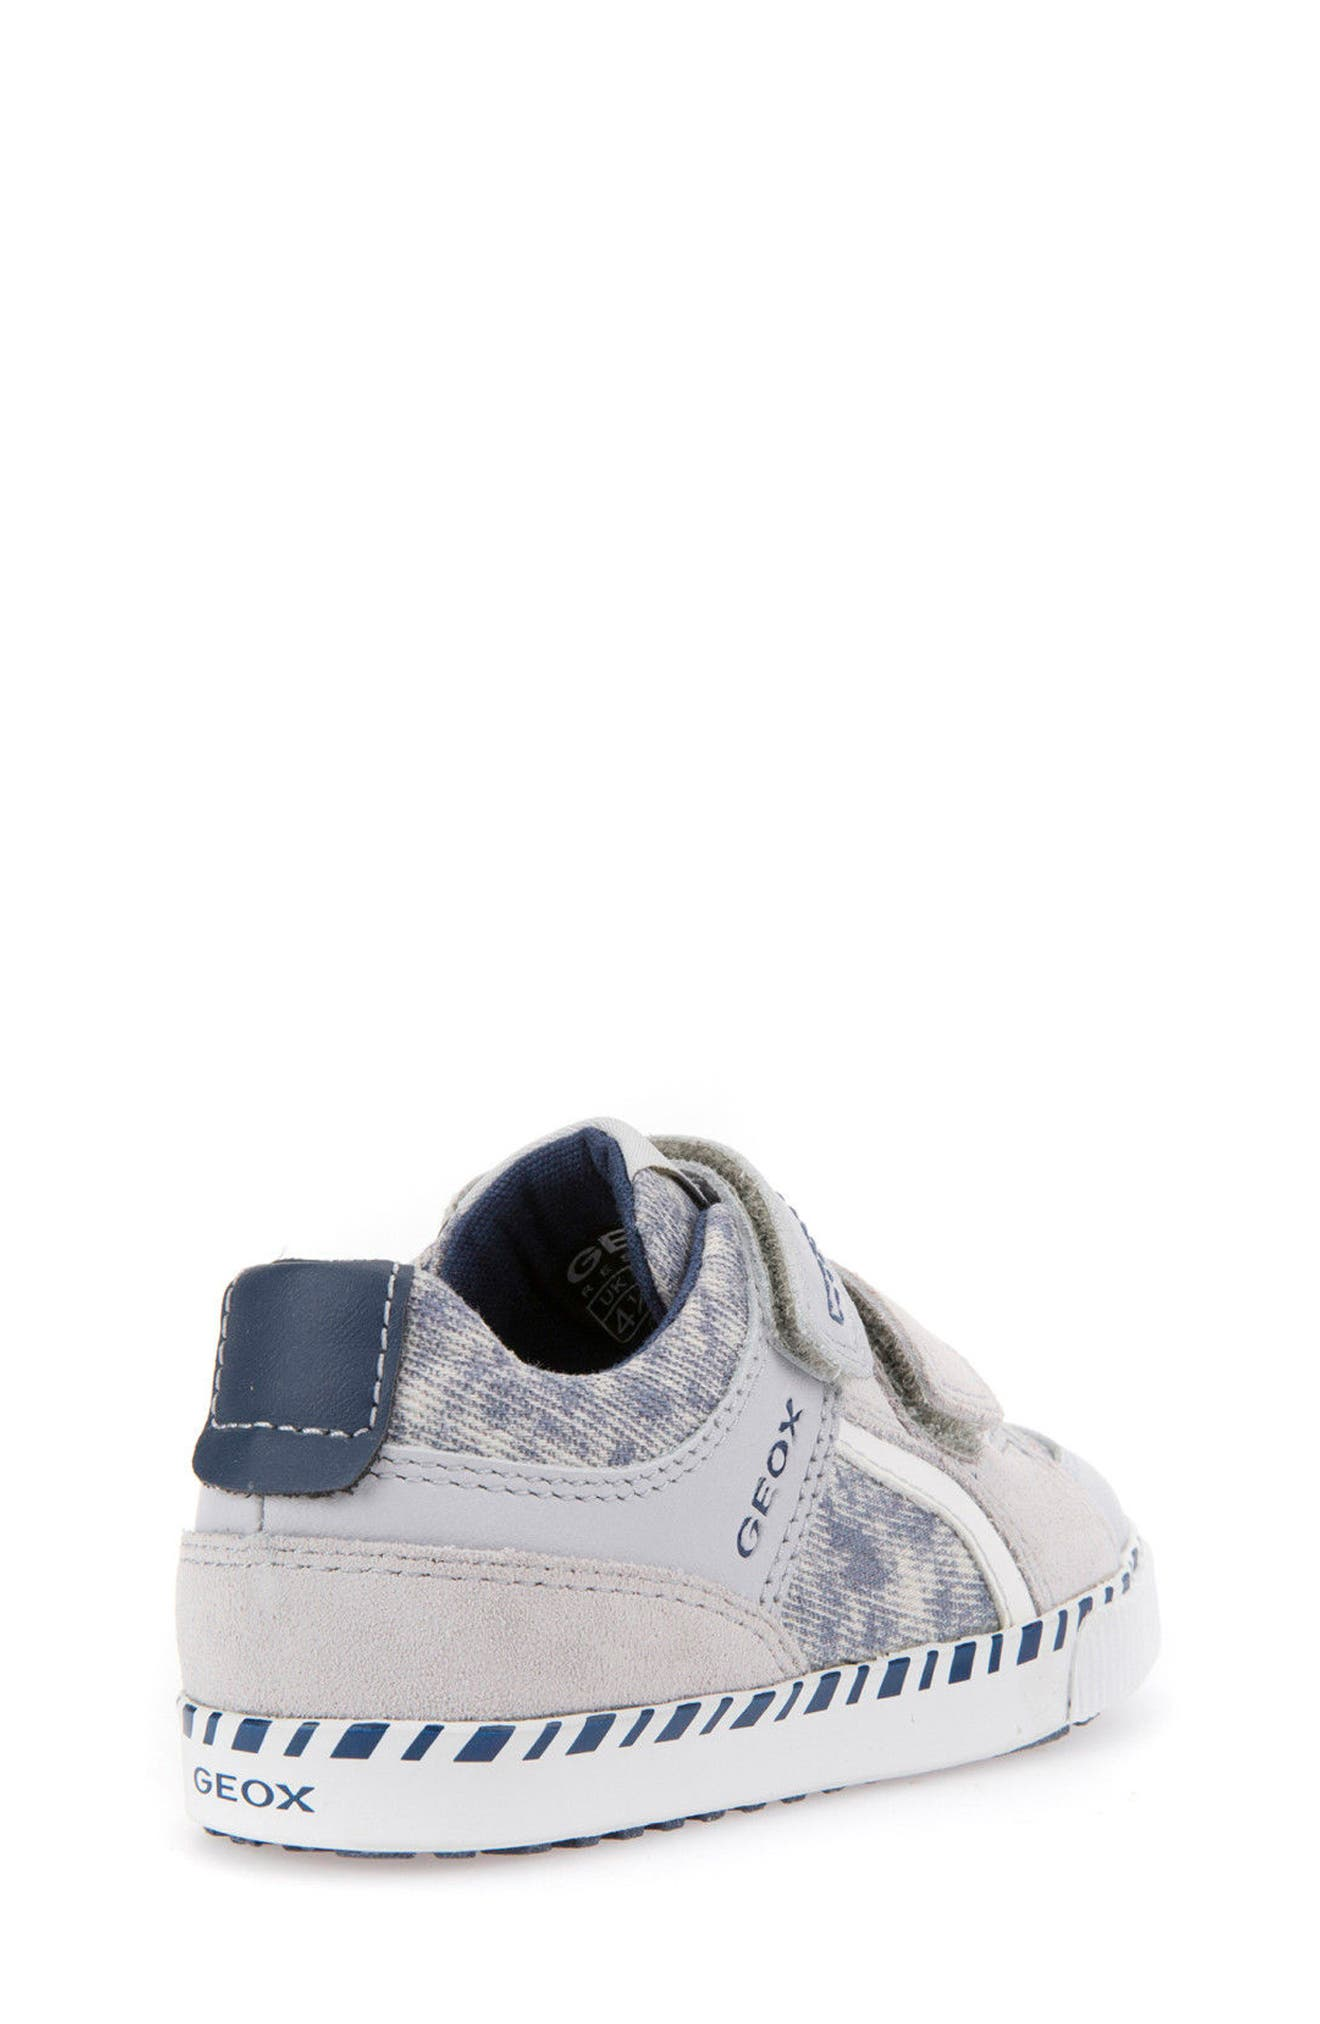 Kilwi Knit Sneaker,                             Alternate thumbnail 2, color,                             Light Grey/ White